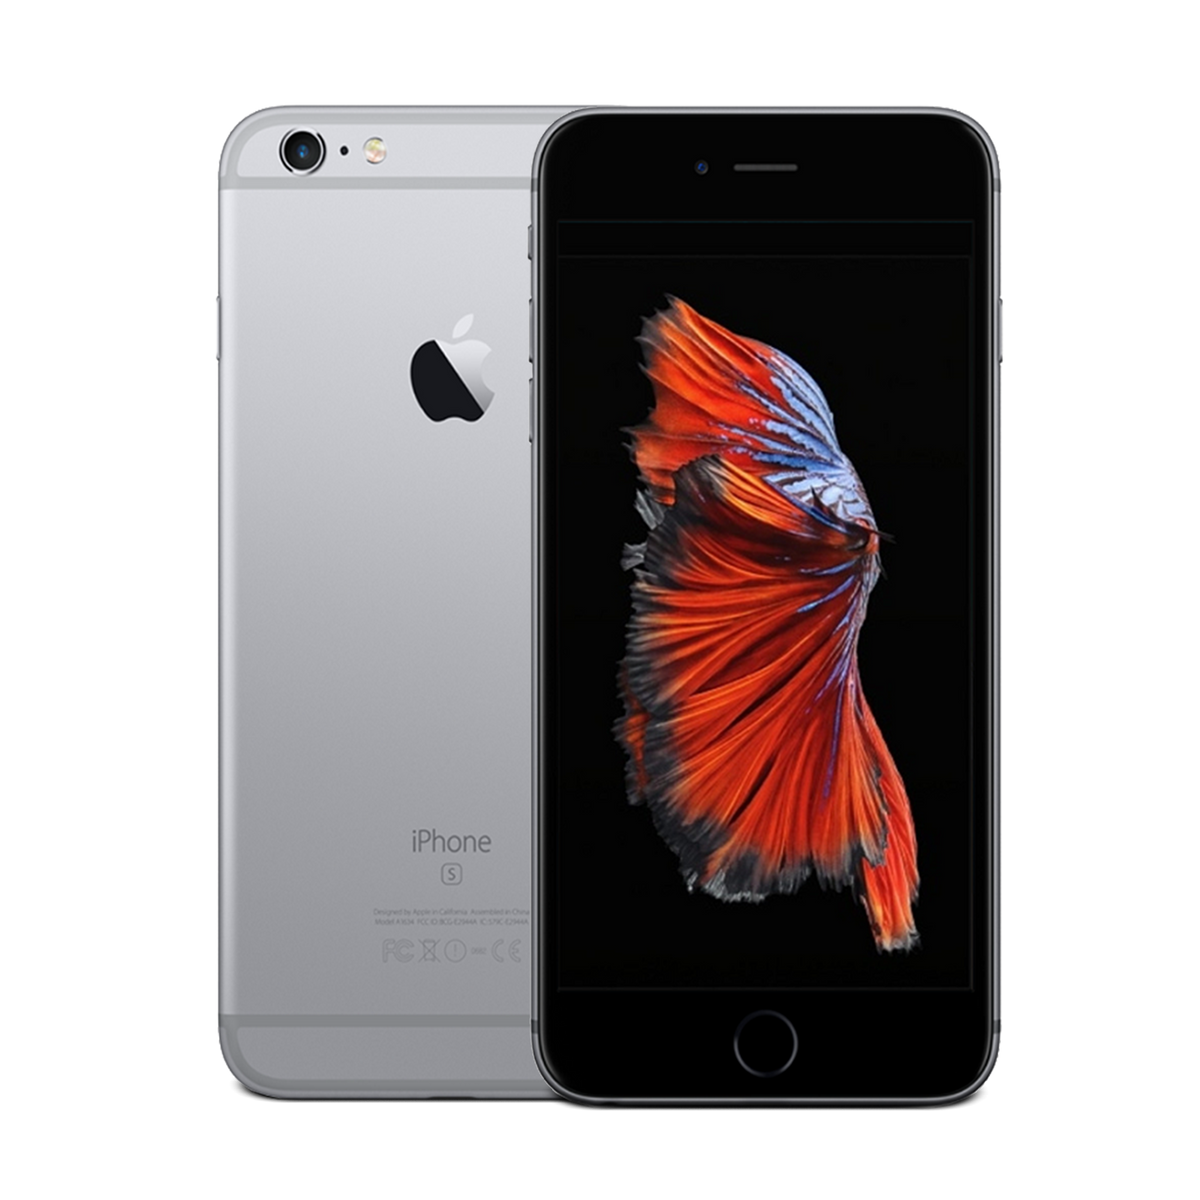 iPhone 6s 64GB Space Grey | Very Good